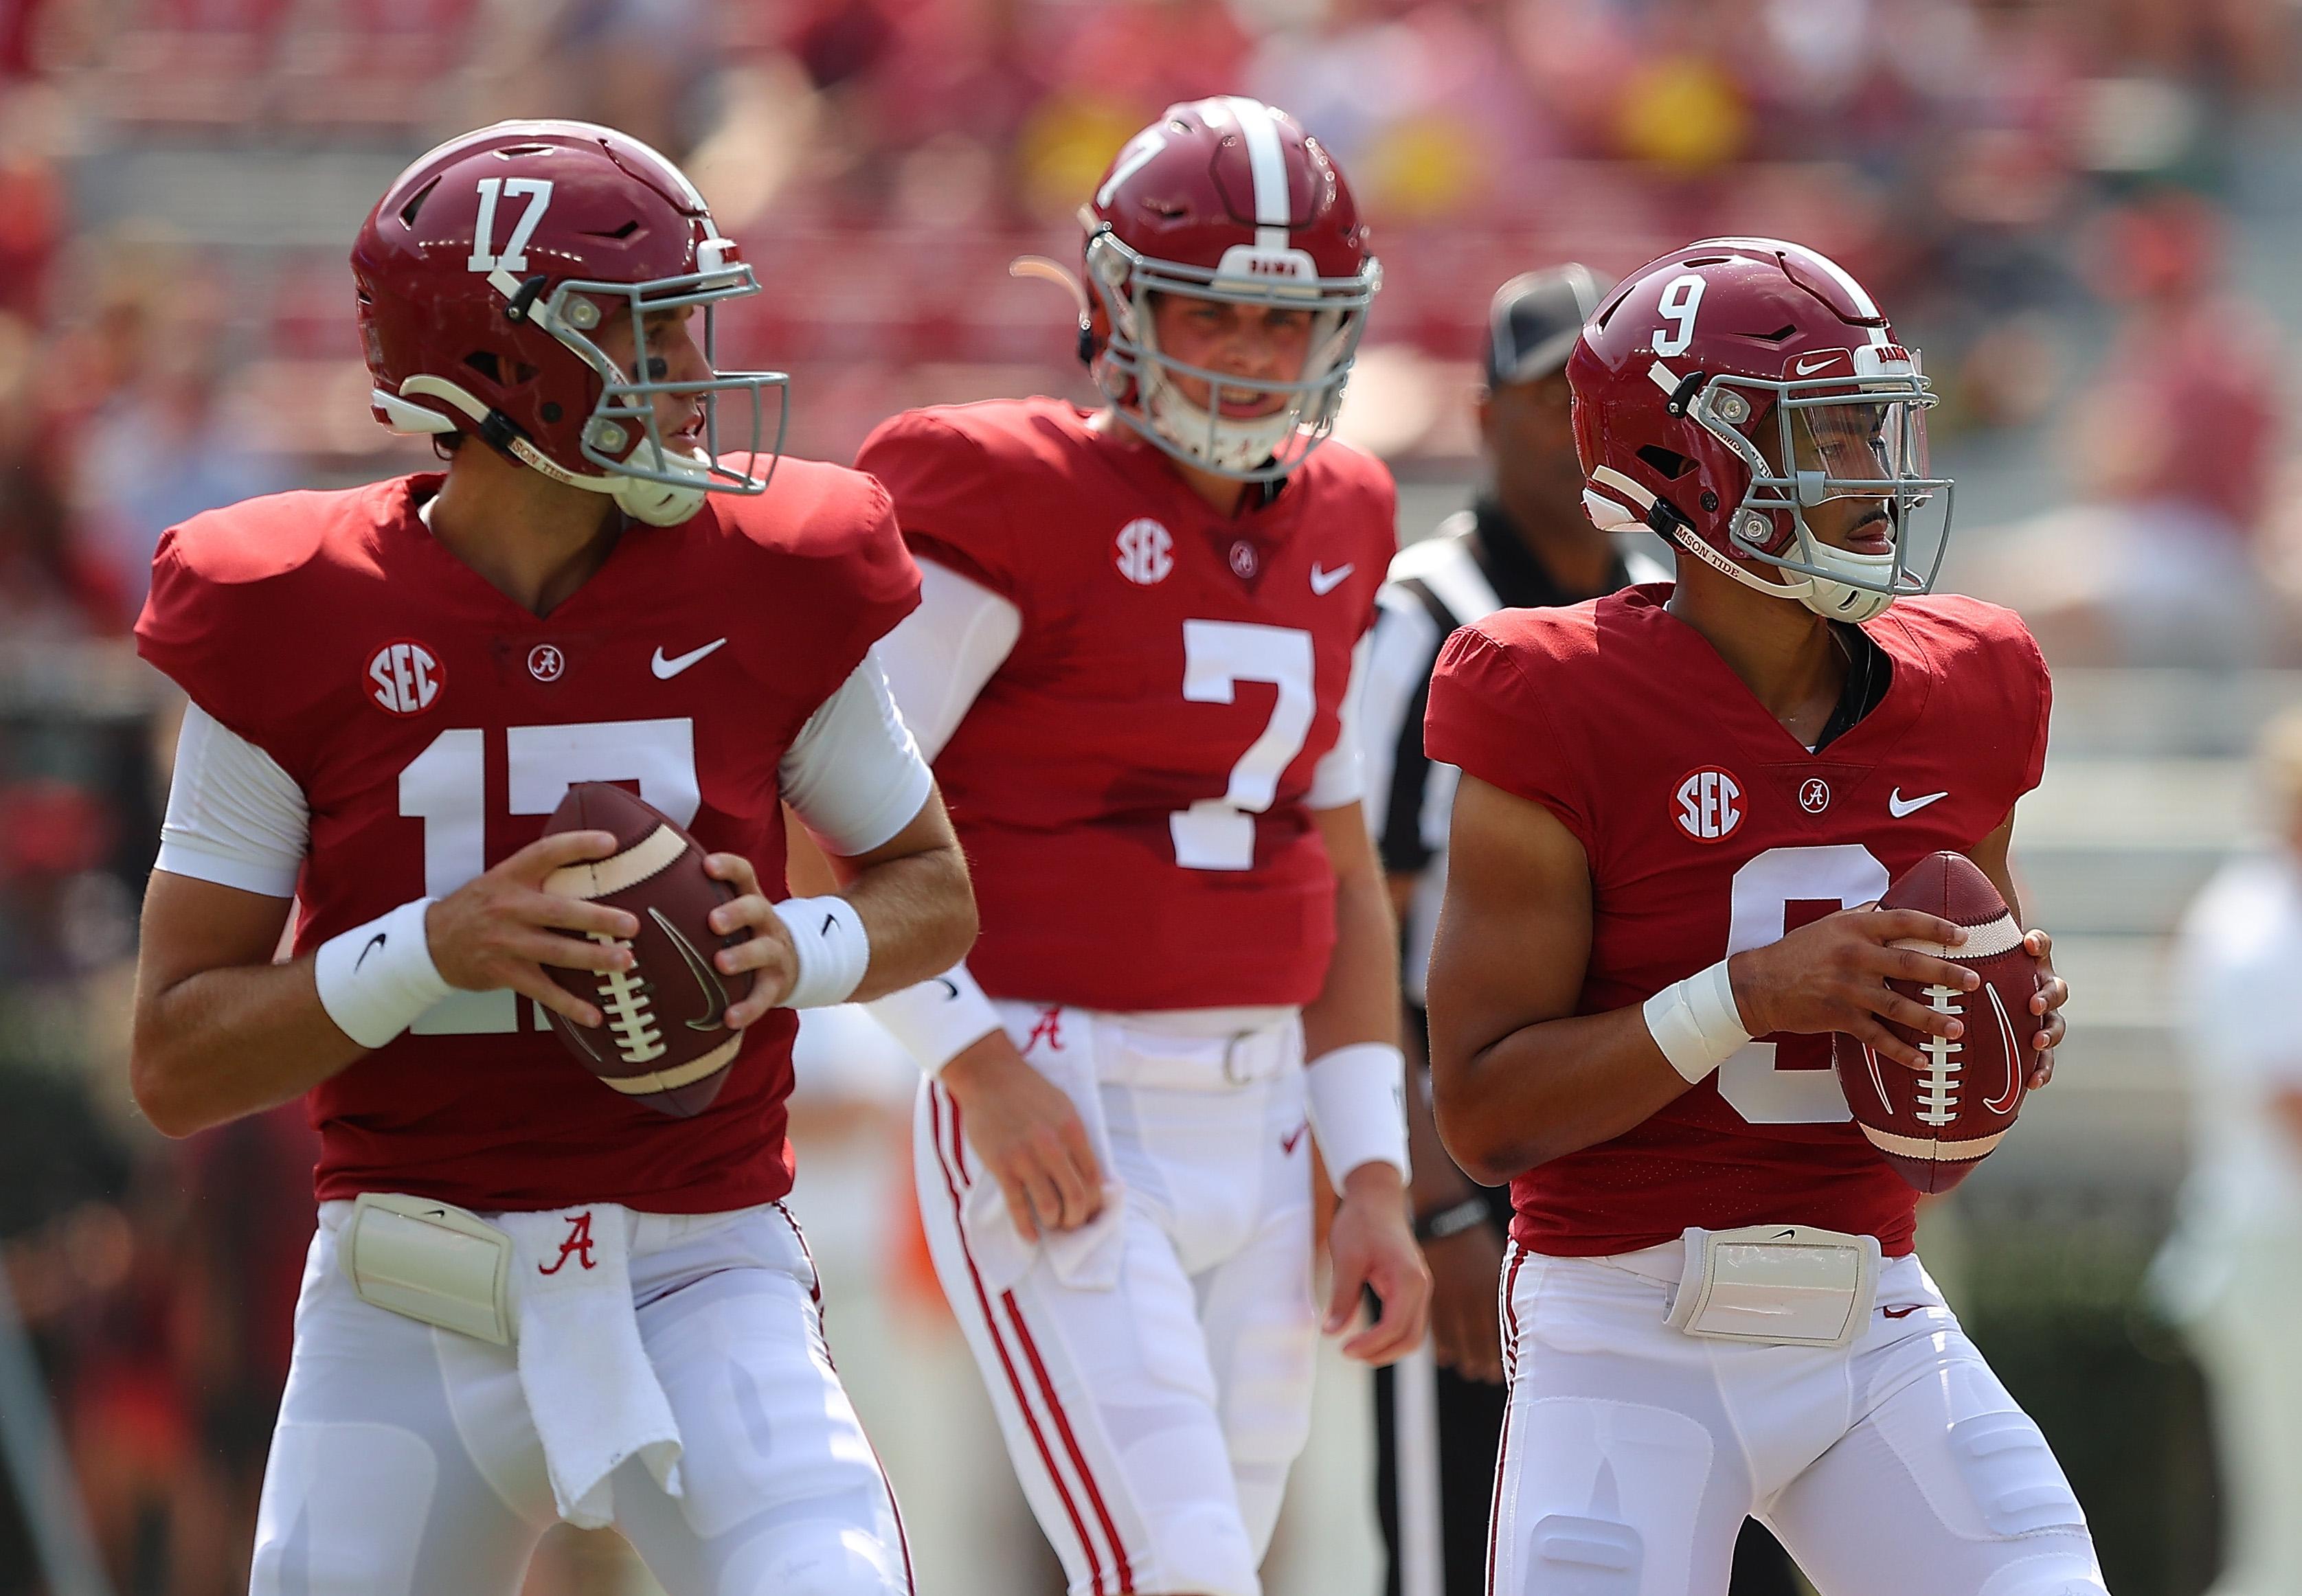 Bryce Young and Paul Tyson of the Alabama Crimson Tide warms up prior to facing the Mercer Bears at Bryant-Denny Stadium on September 11, 2021 in Tuscaloosa, Alabama.